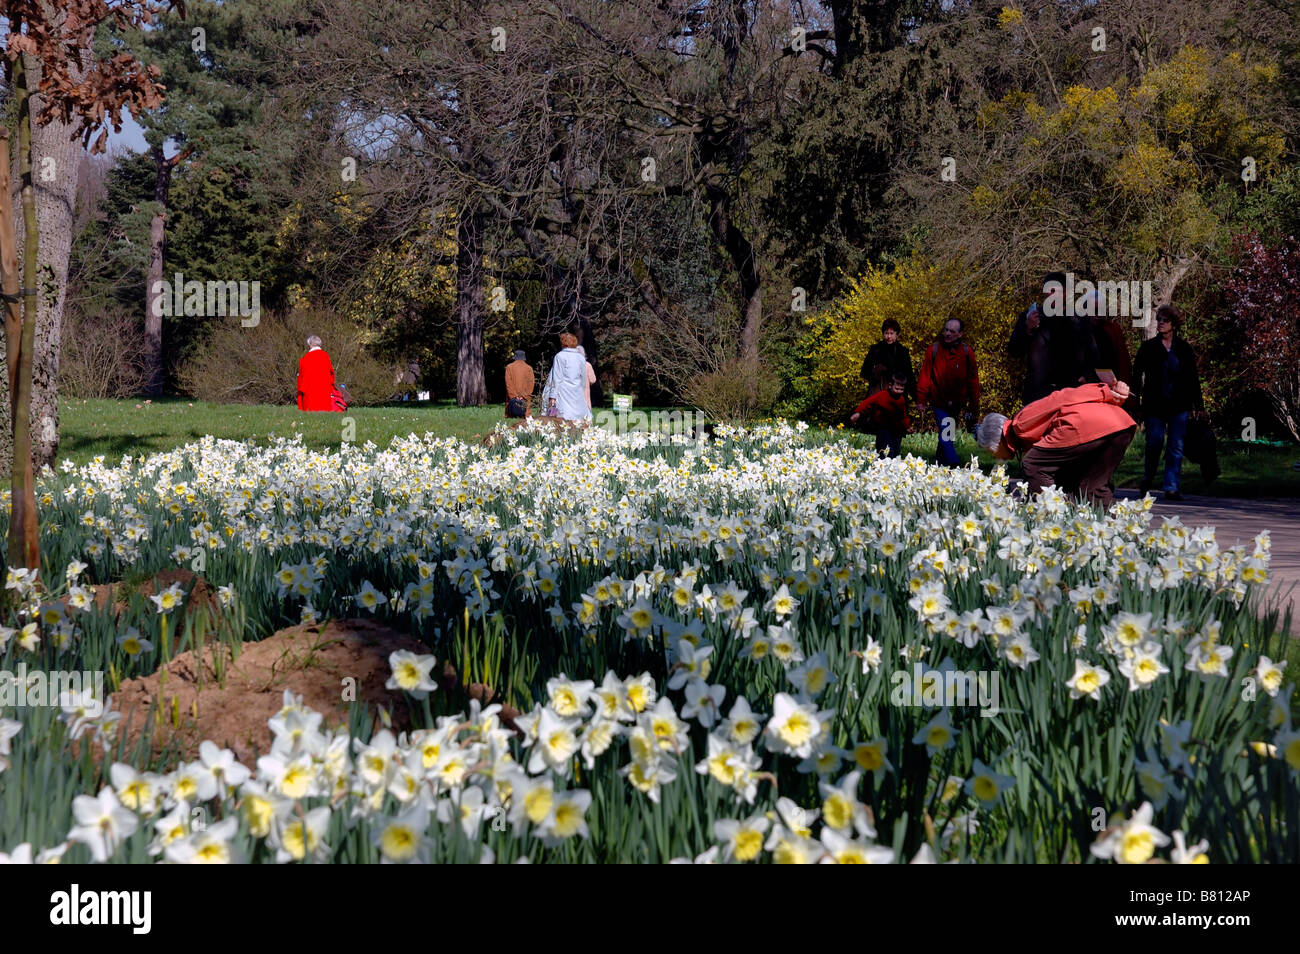 Paris, France, People among Narcissus flowers at bagatelle park in march Stock Photo